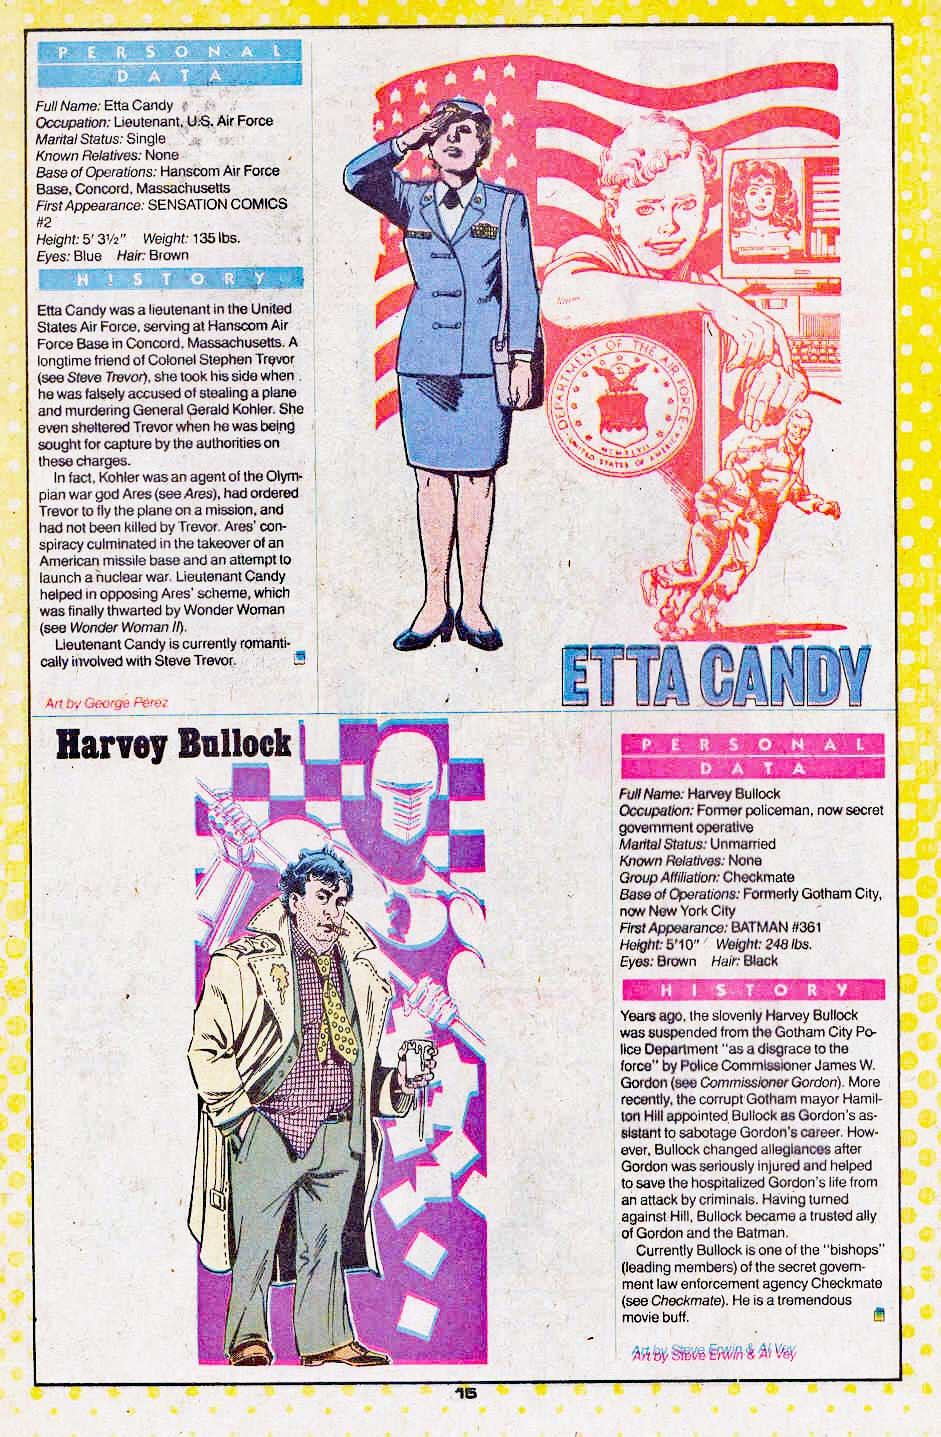 Etta Candy by George Perez - Who's Who: Update '88, vol. 4